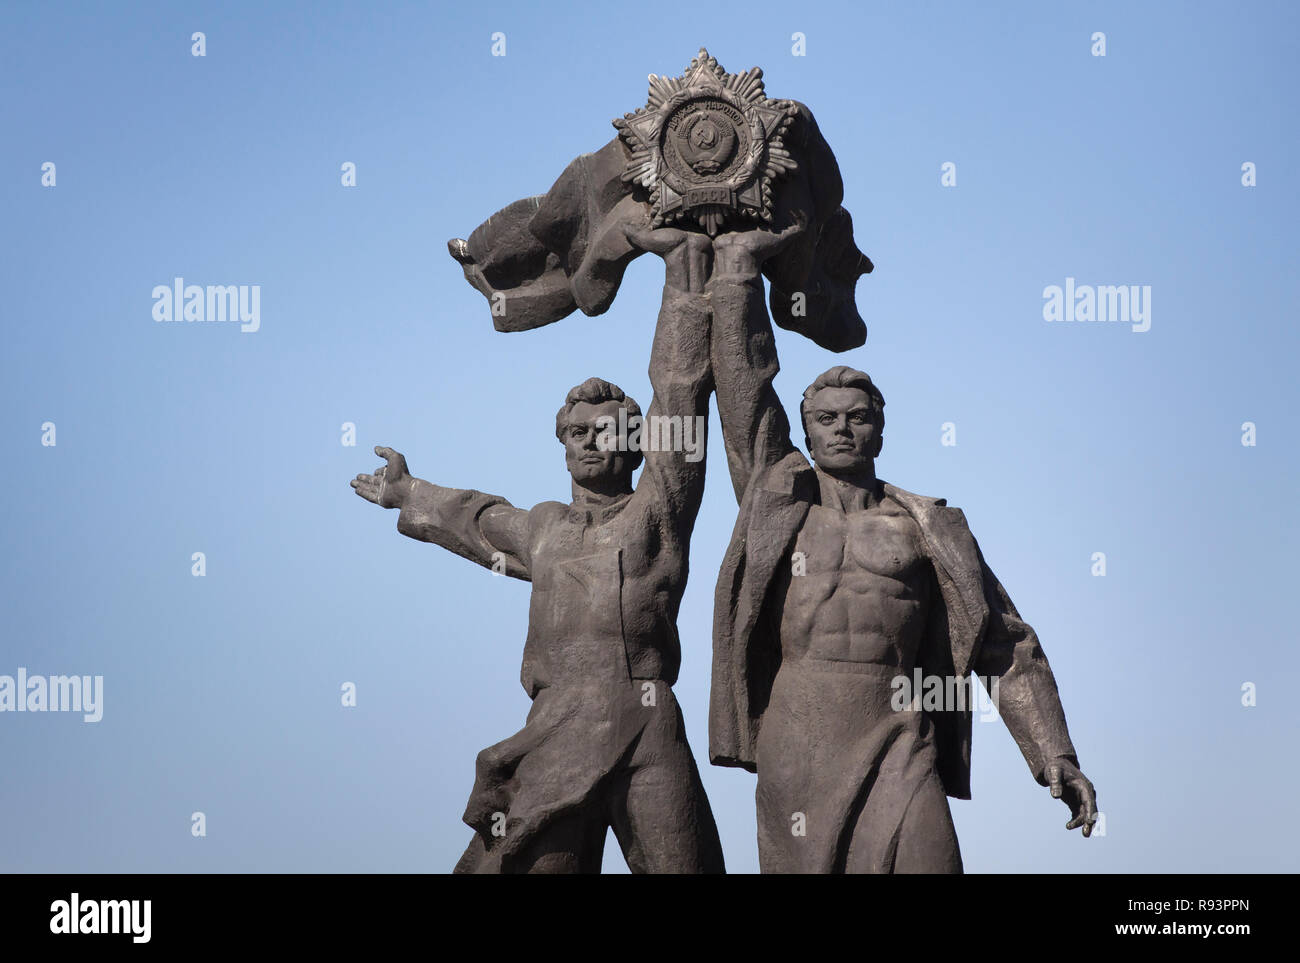 Statue of Sovjet realism: two young men of black stone holding up a CCCP medallion, Kiev, Ukraine - Stock Image